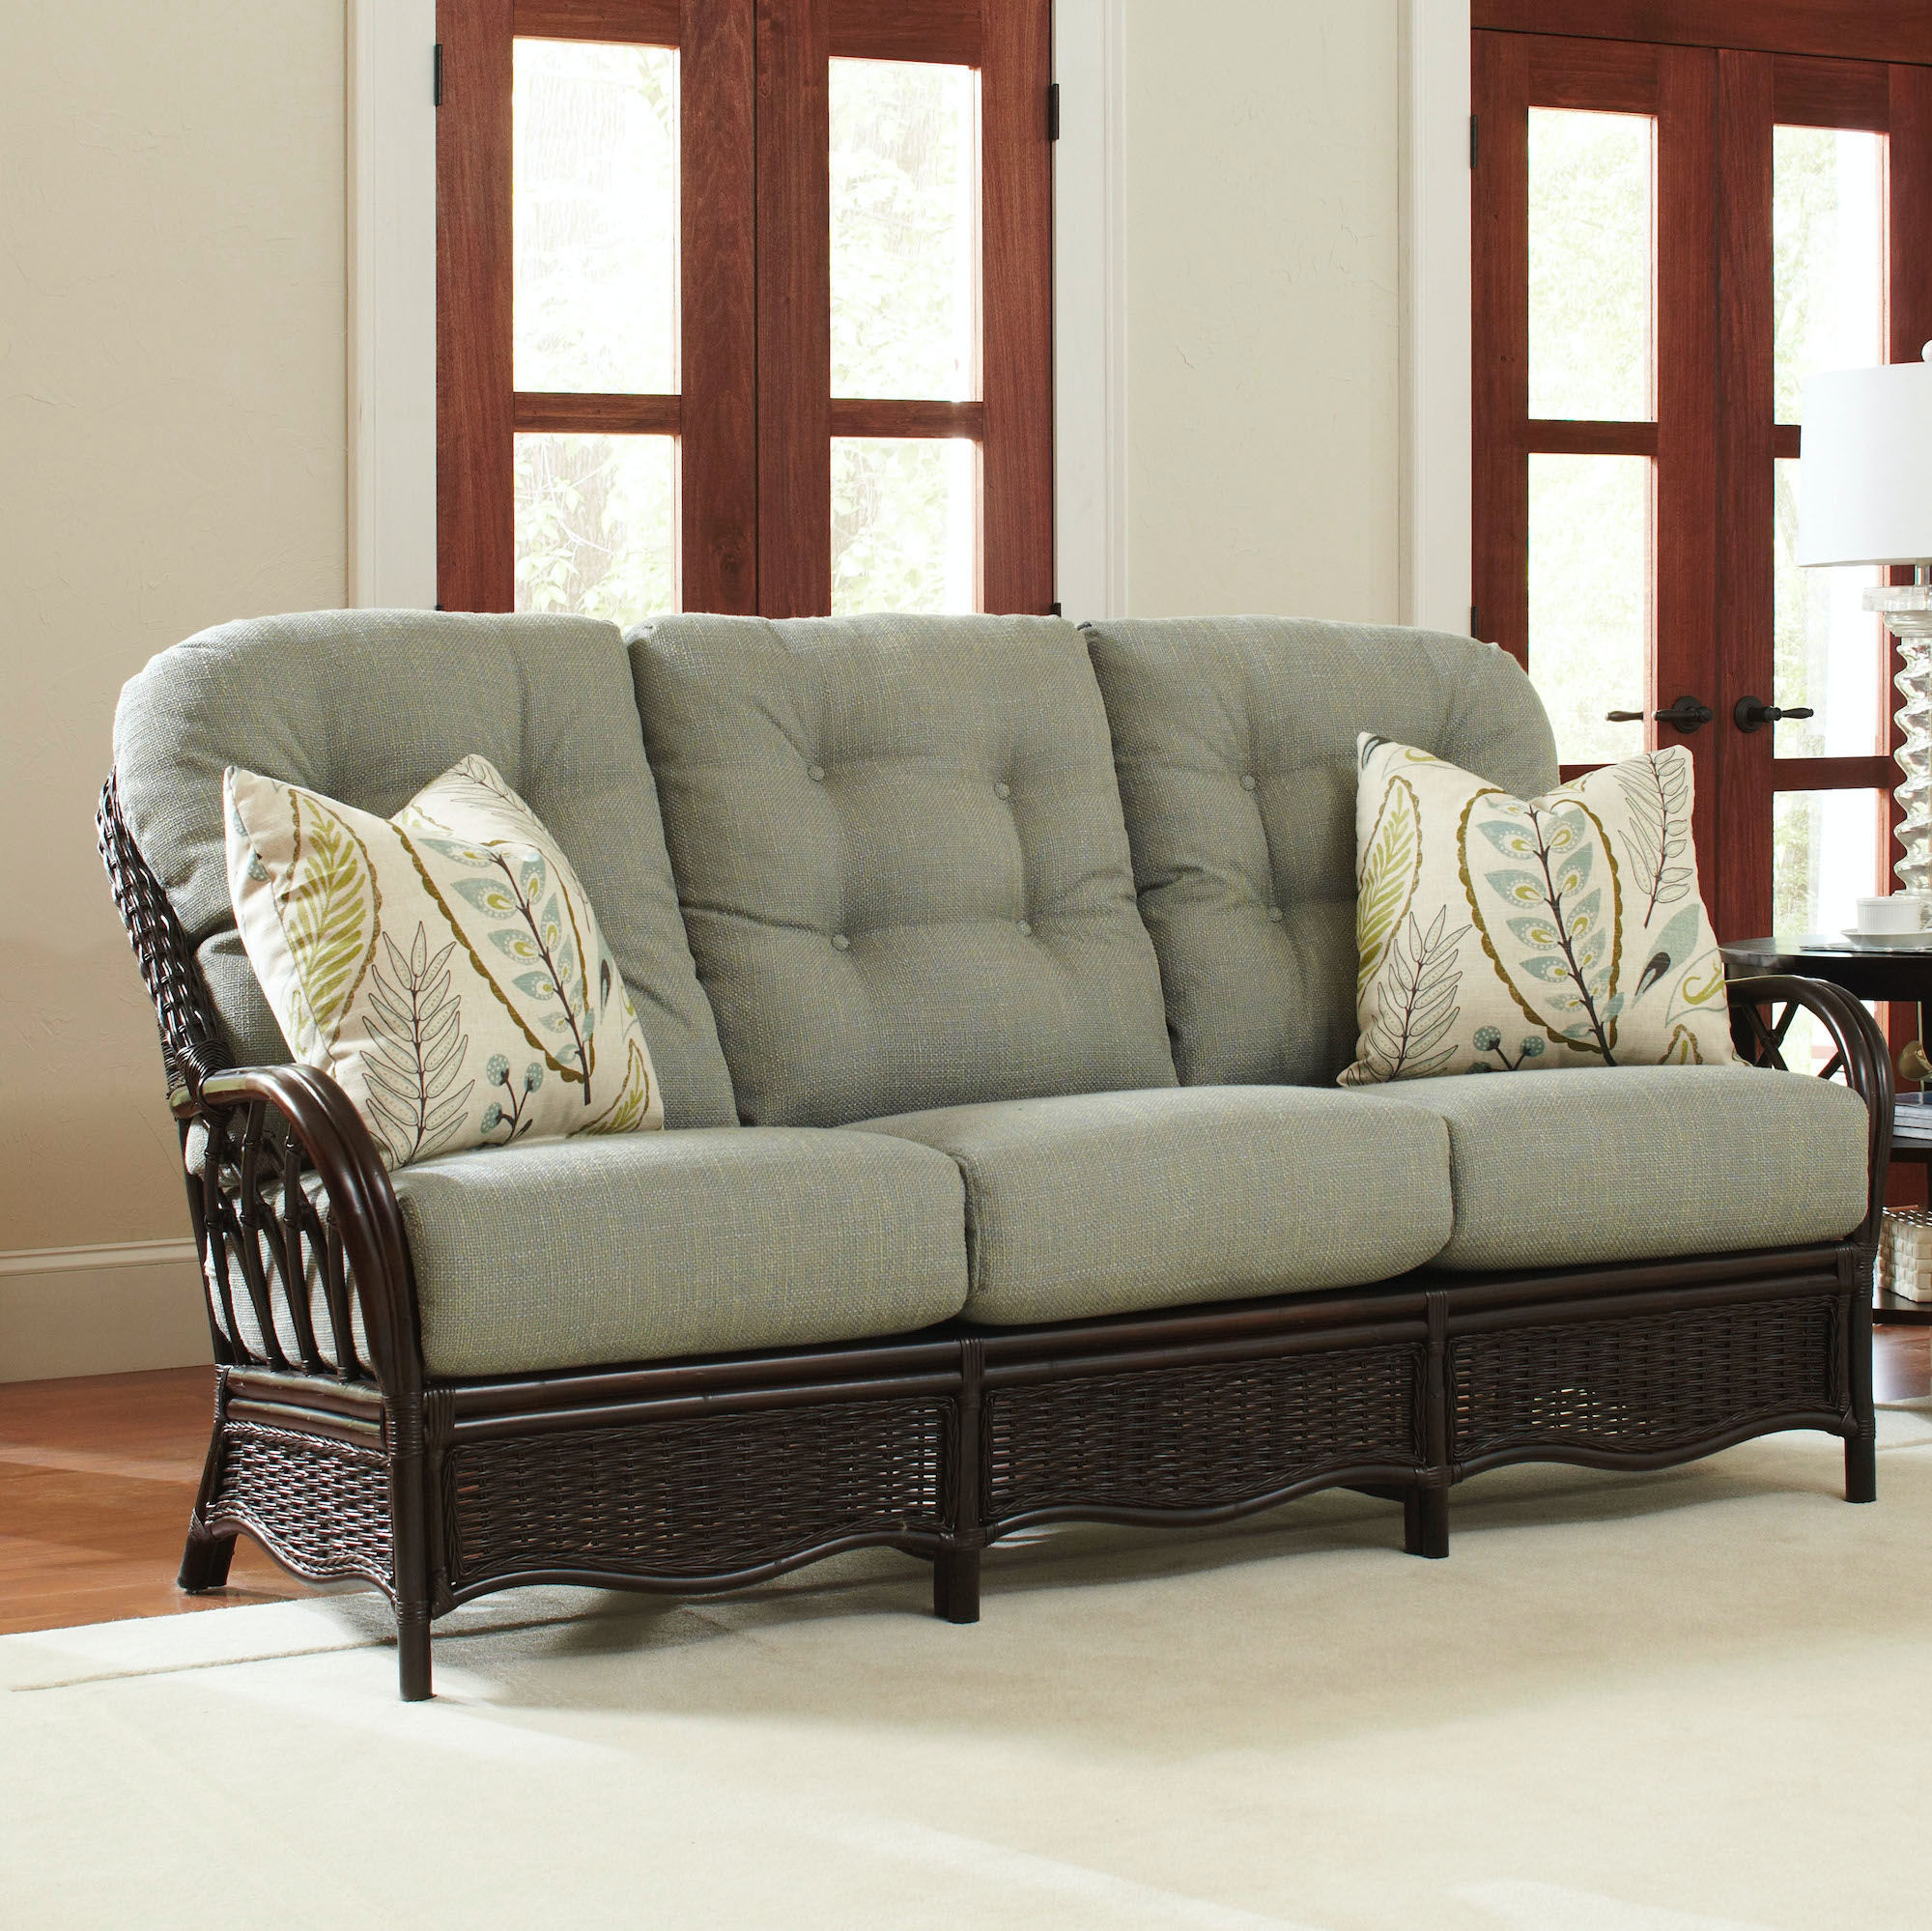 Everglade Sofa 905-011